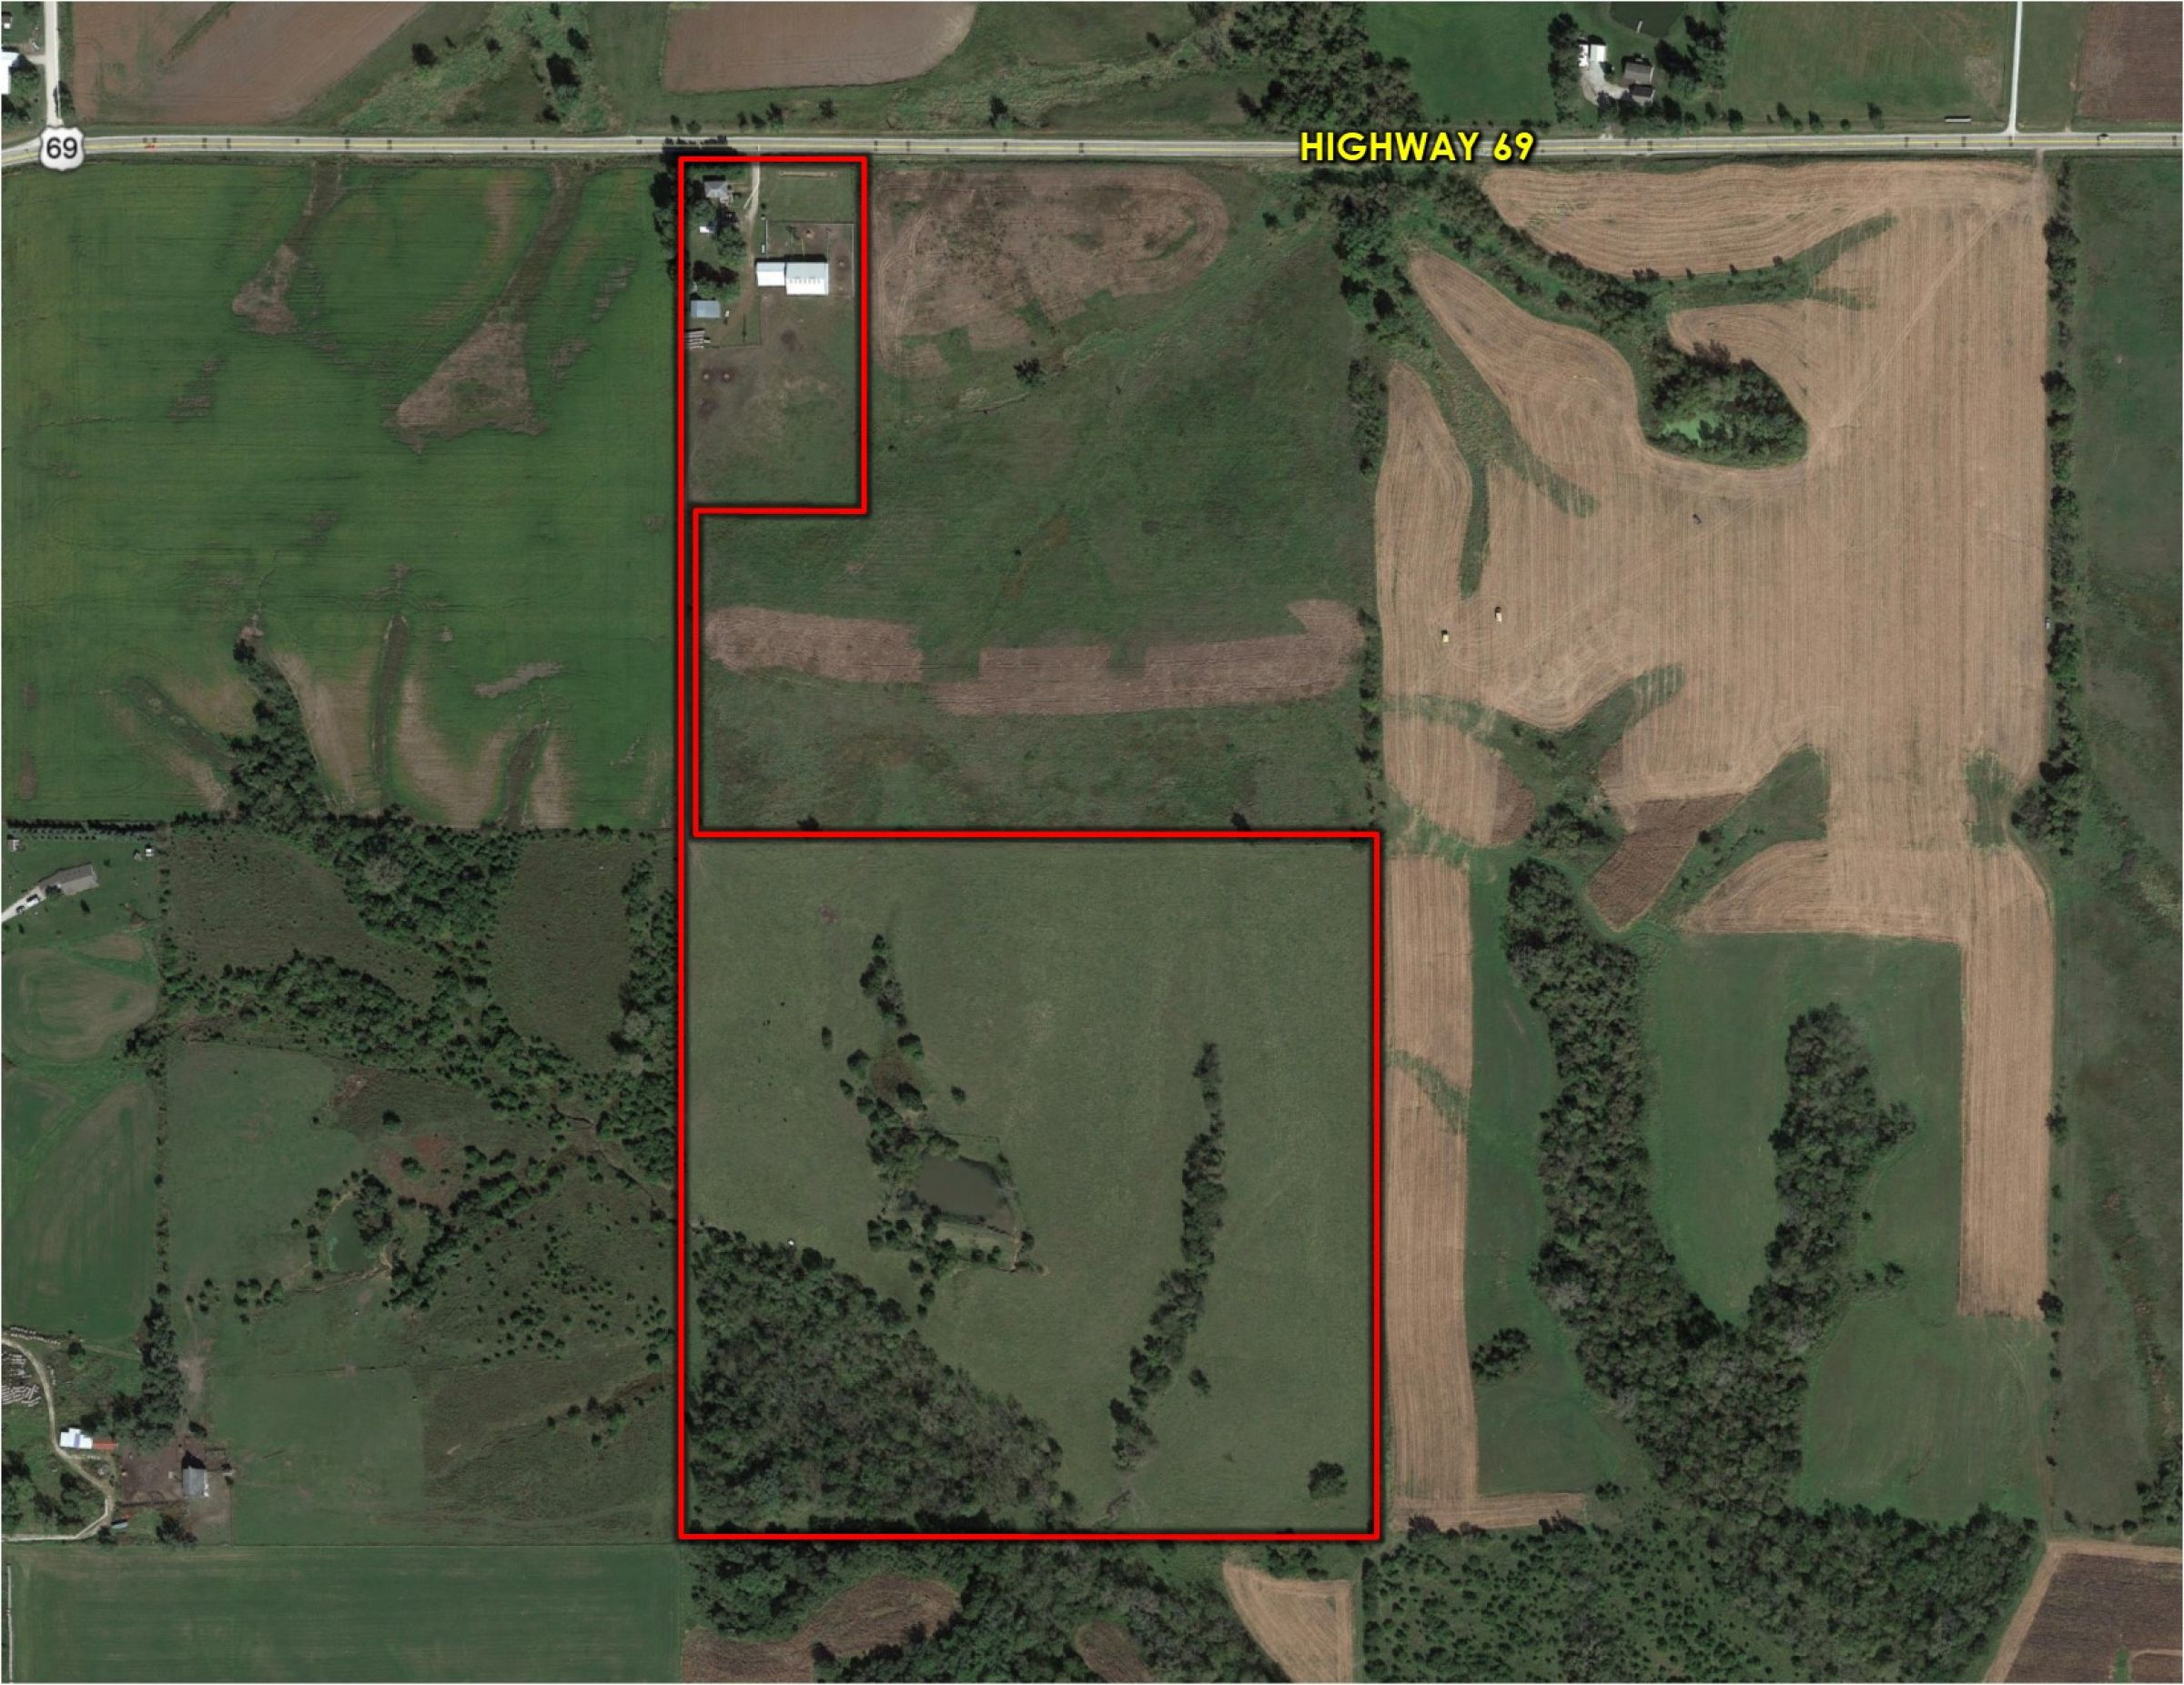 Peoples Company Land for Sale - #14724-1400-highway-69-osceola-50213